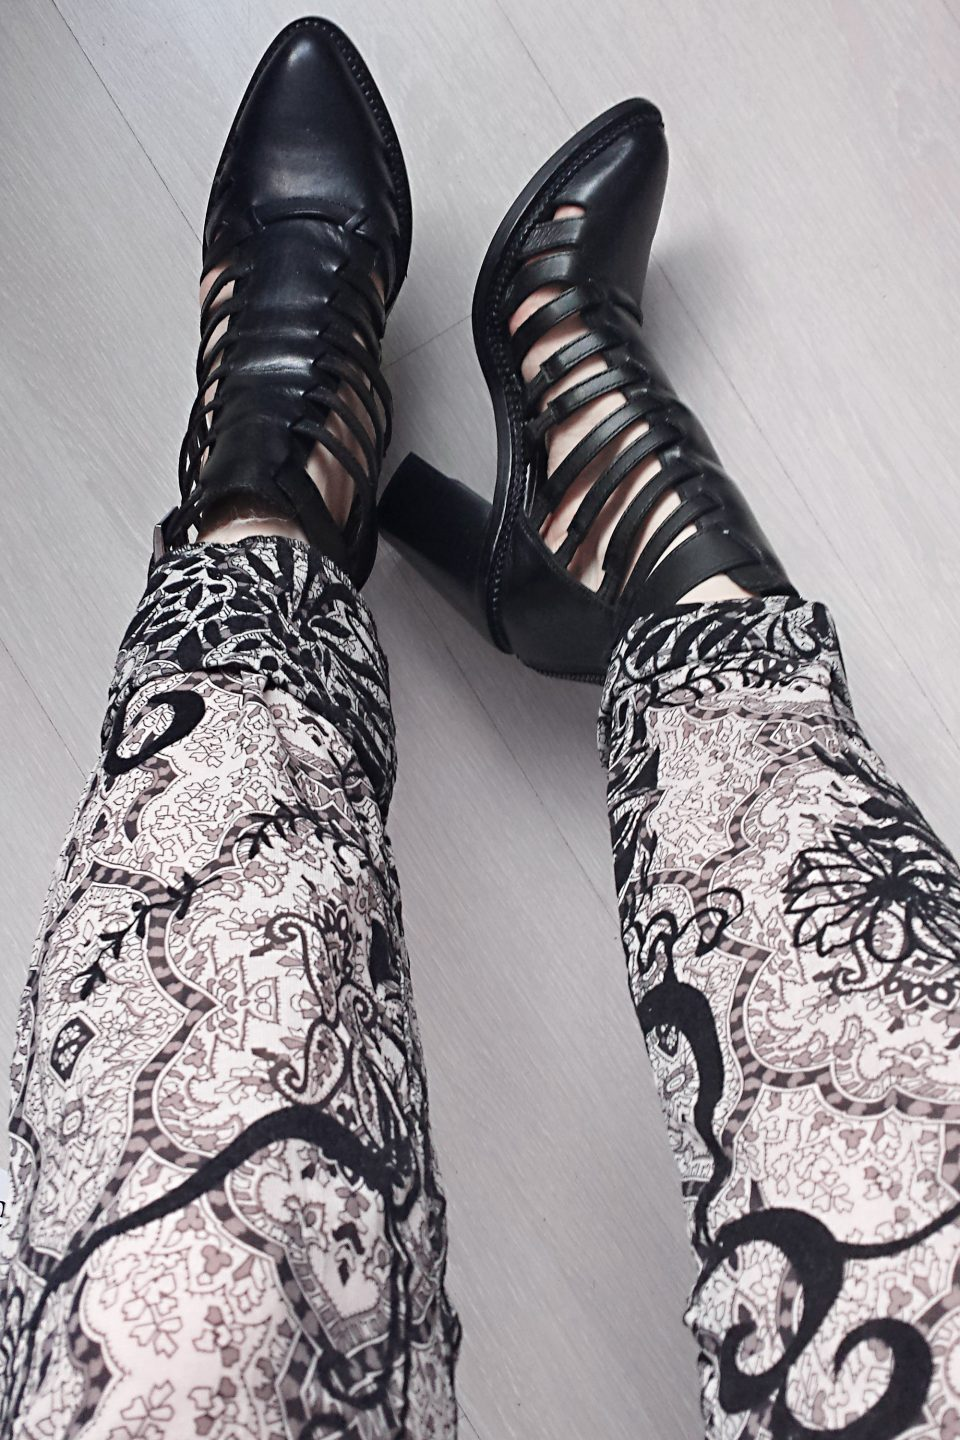 fashion trend style paisley print velvet trousers cut out heeled boots asos lavish alice